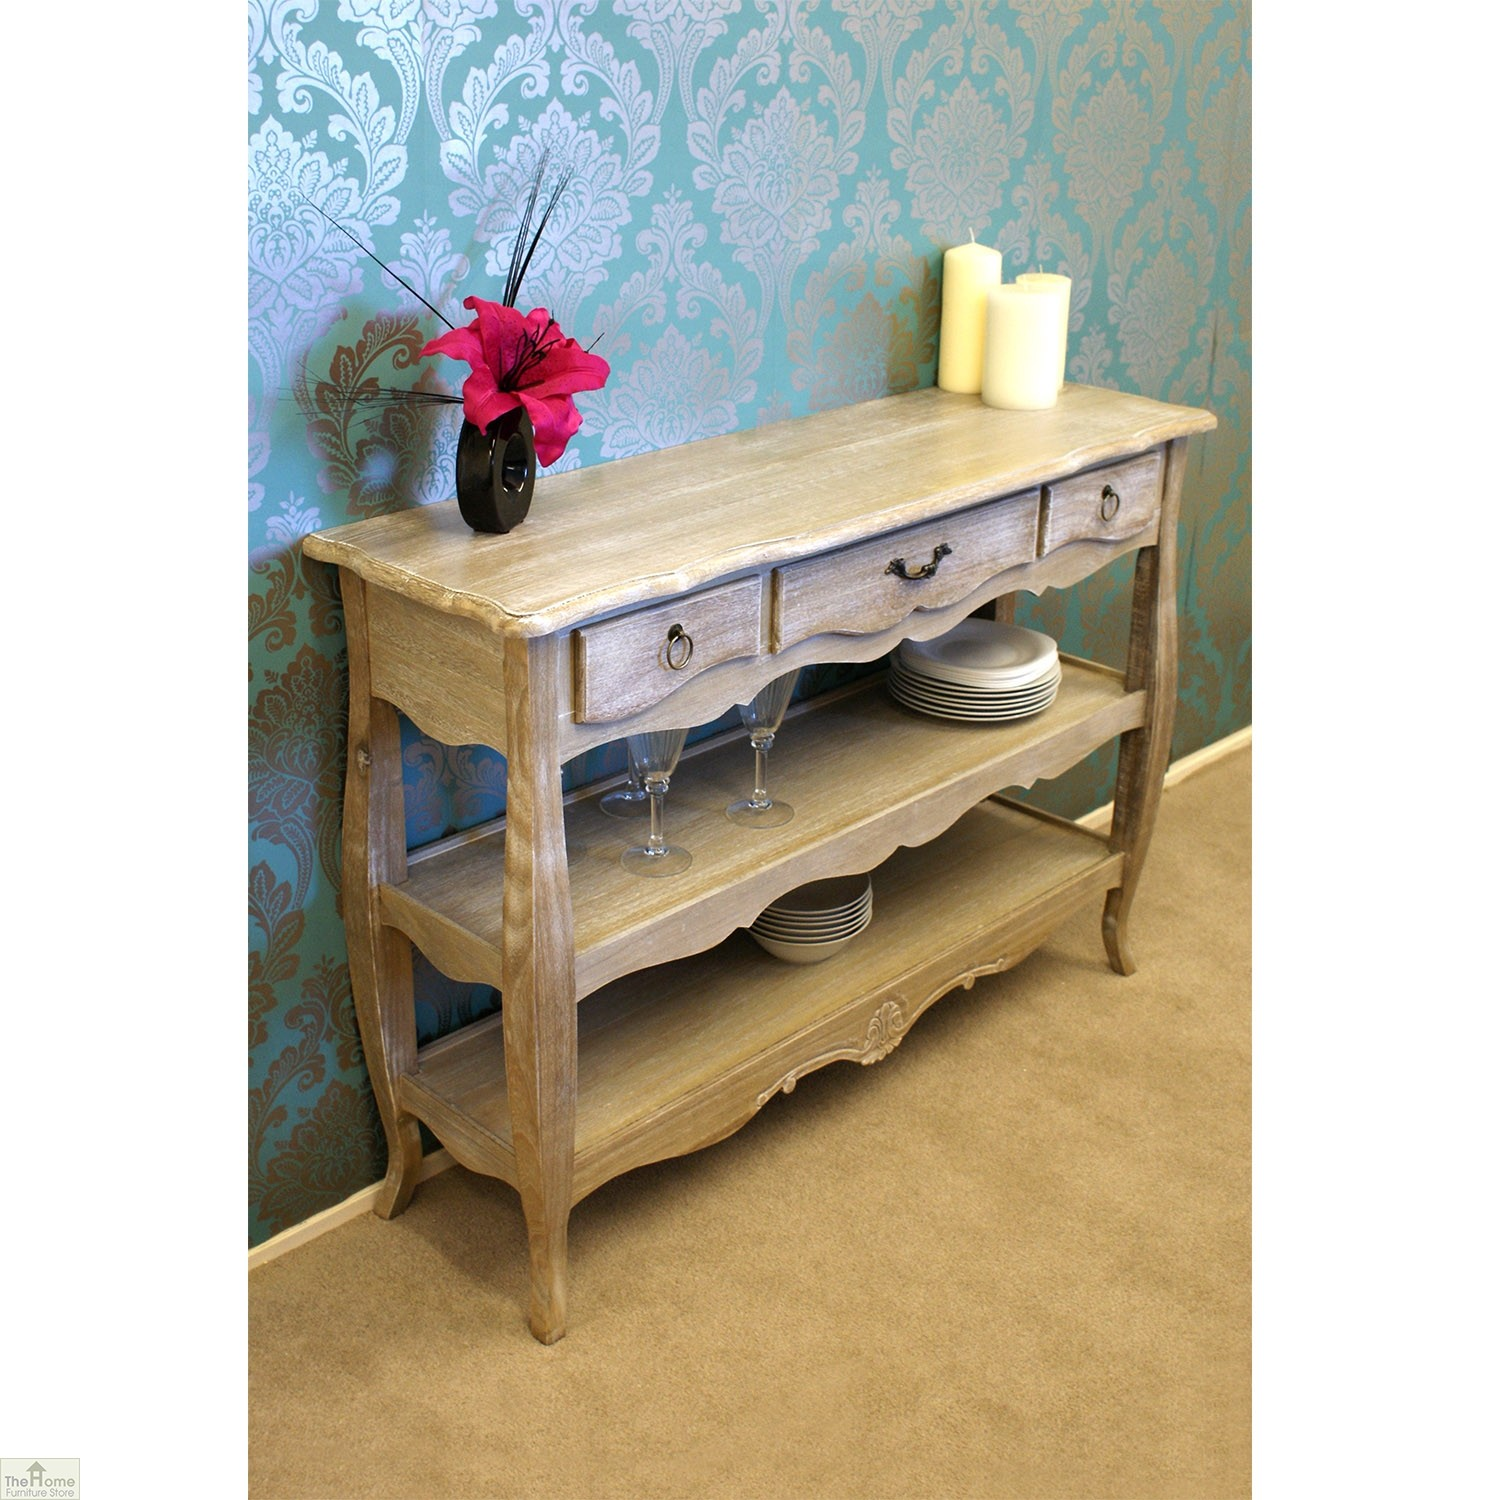 Casamor bordeaux 3 drawer 2 shelf console table the hfs Home furniture outlet uk